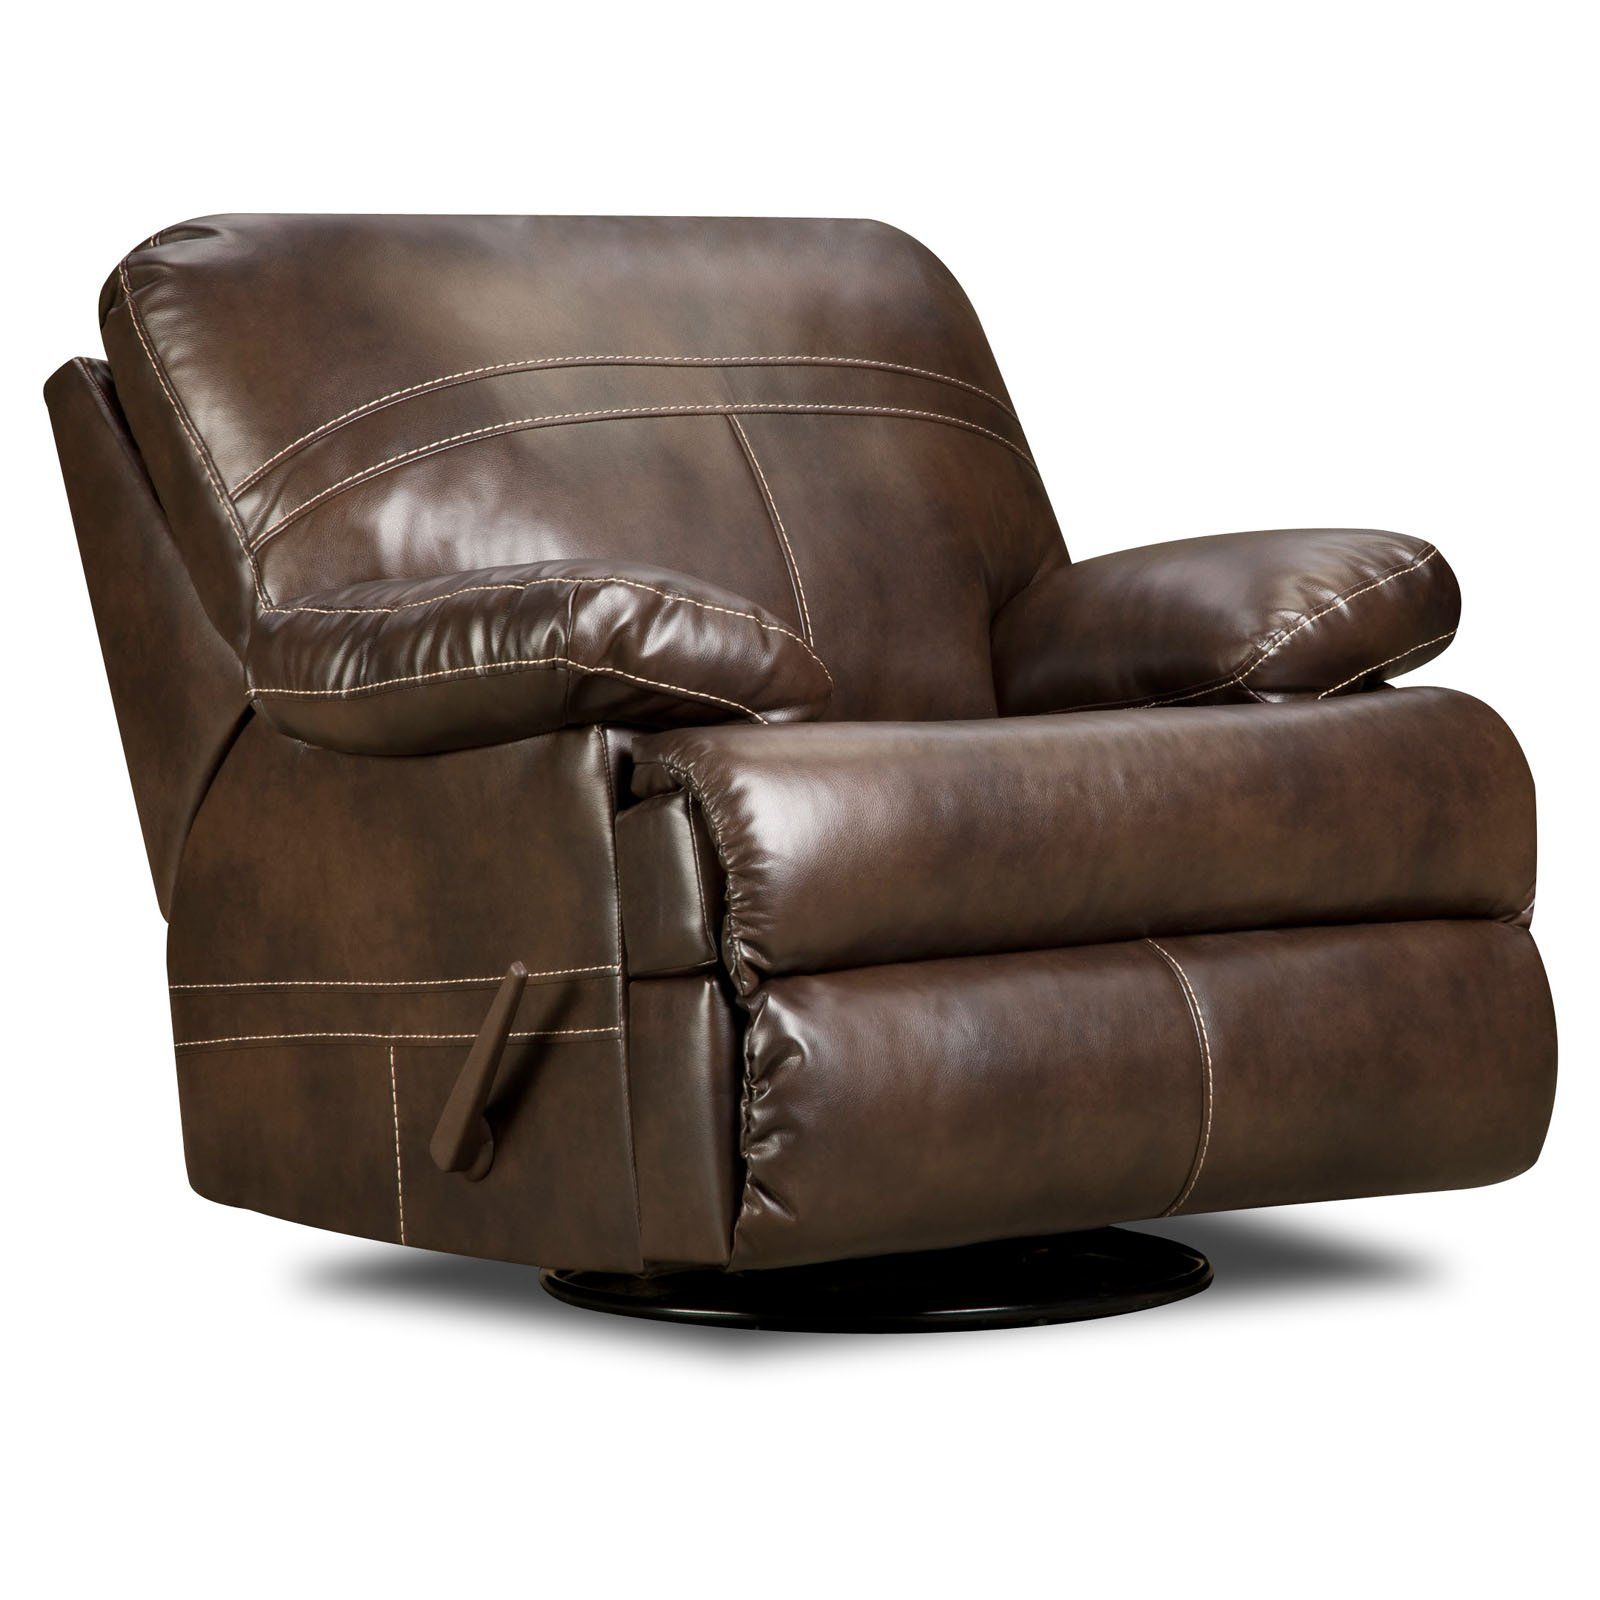 Furniture: Surprising Simmons Recliners For Contemporary Living Room Regarding Rogan Leather Cafe Latte Swivel Glider Recliners (View 5 of 25)